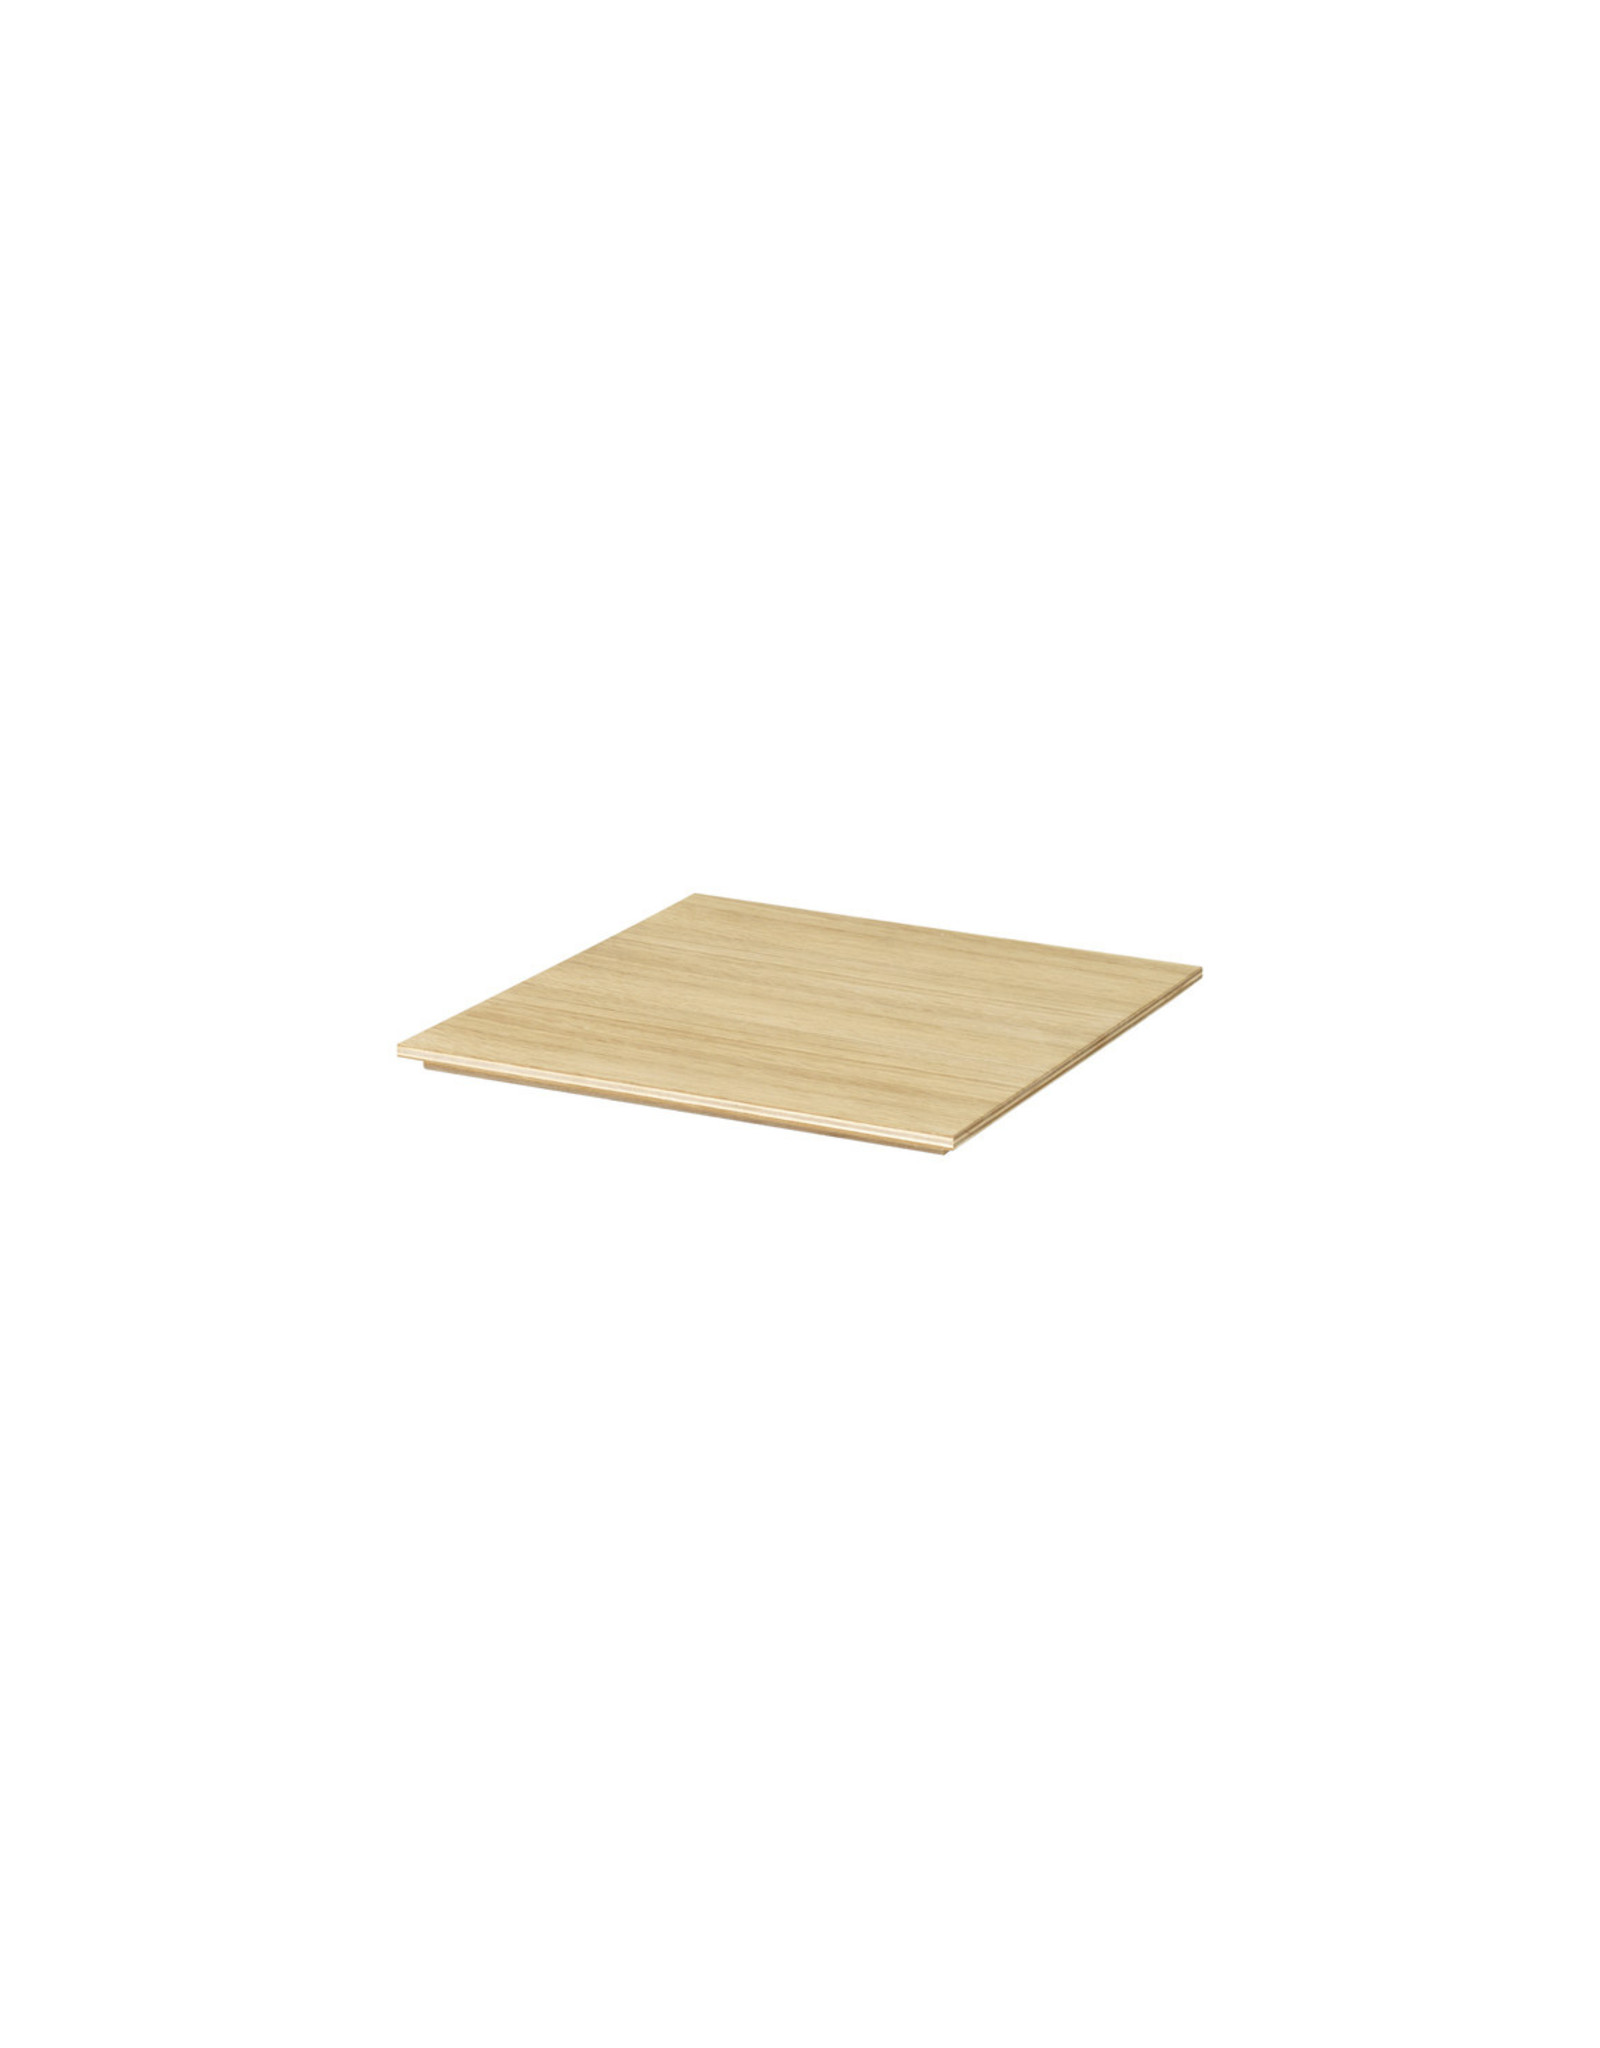 Ferm LIVING ferm LIVING Tray for Plant Box - Wood - Oiled Oak